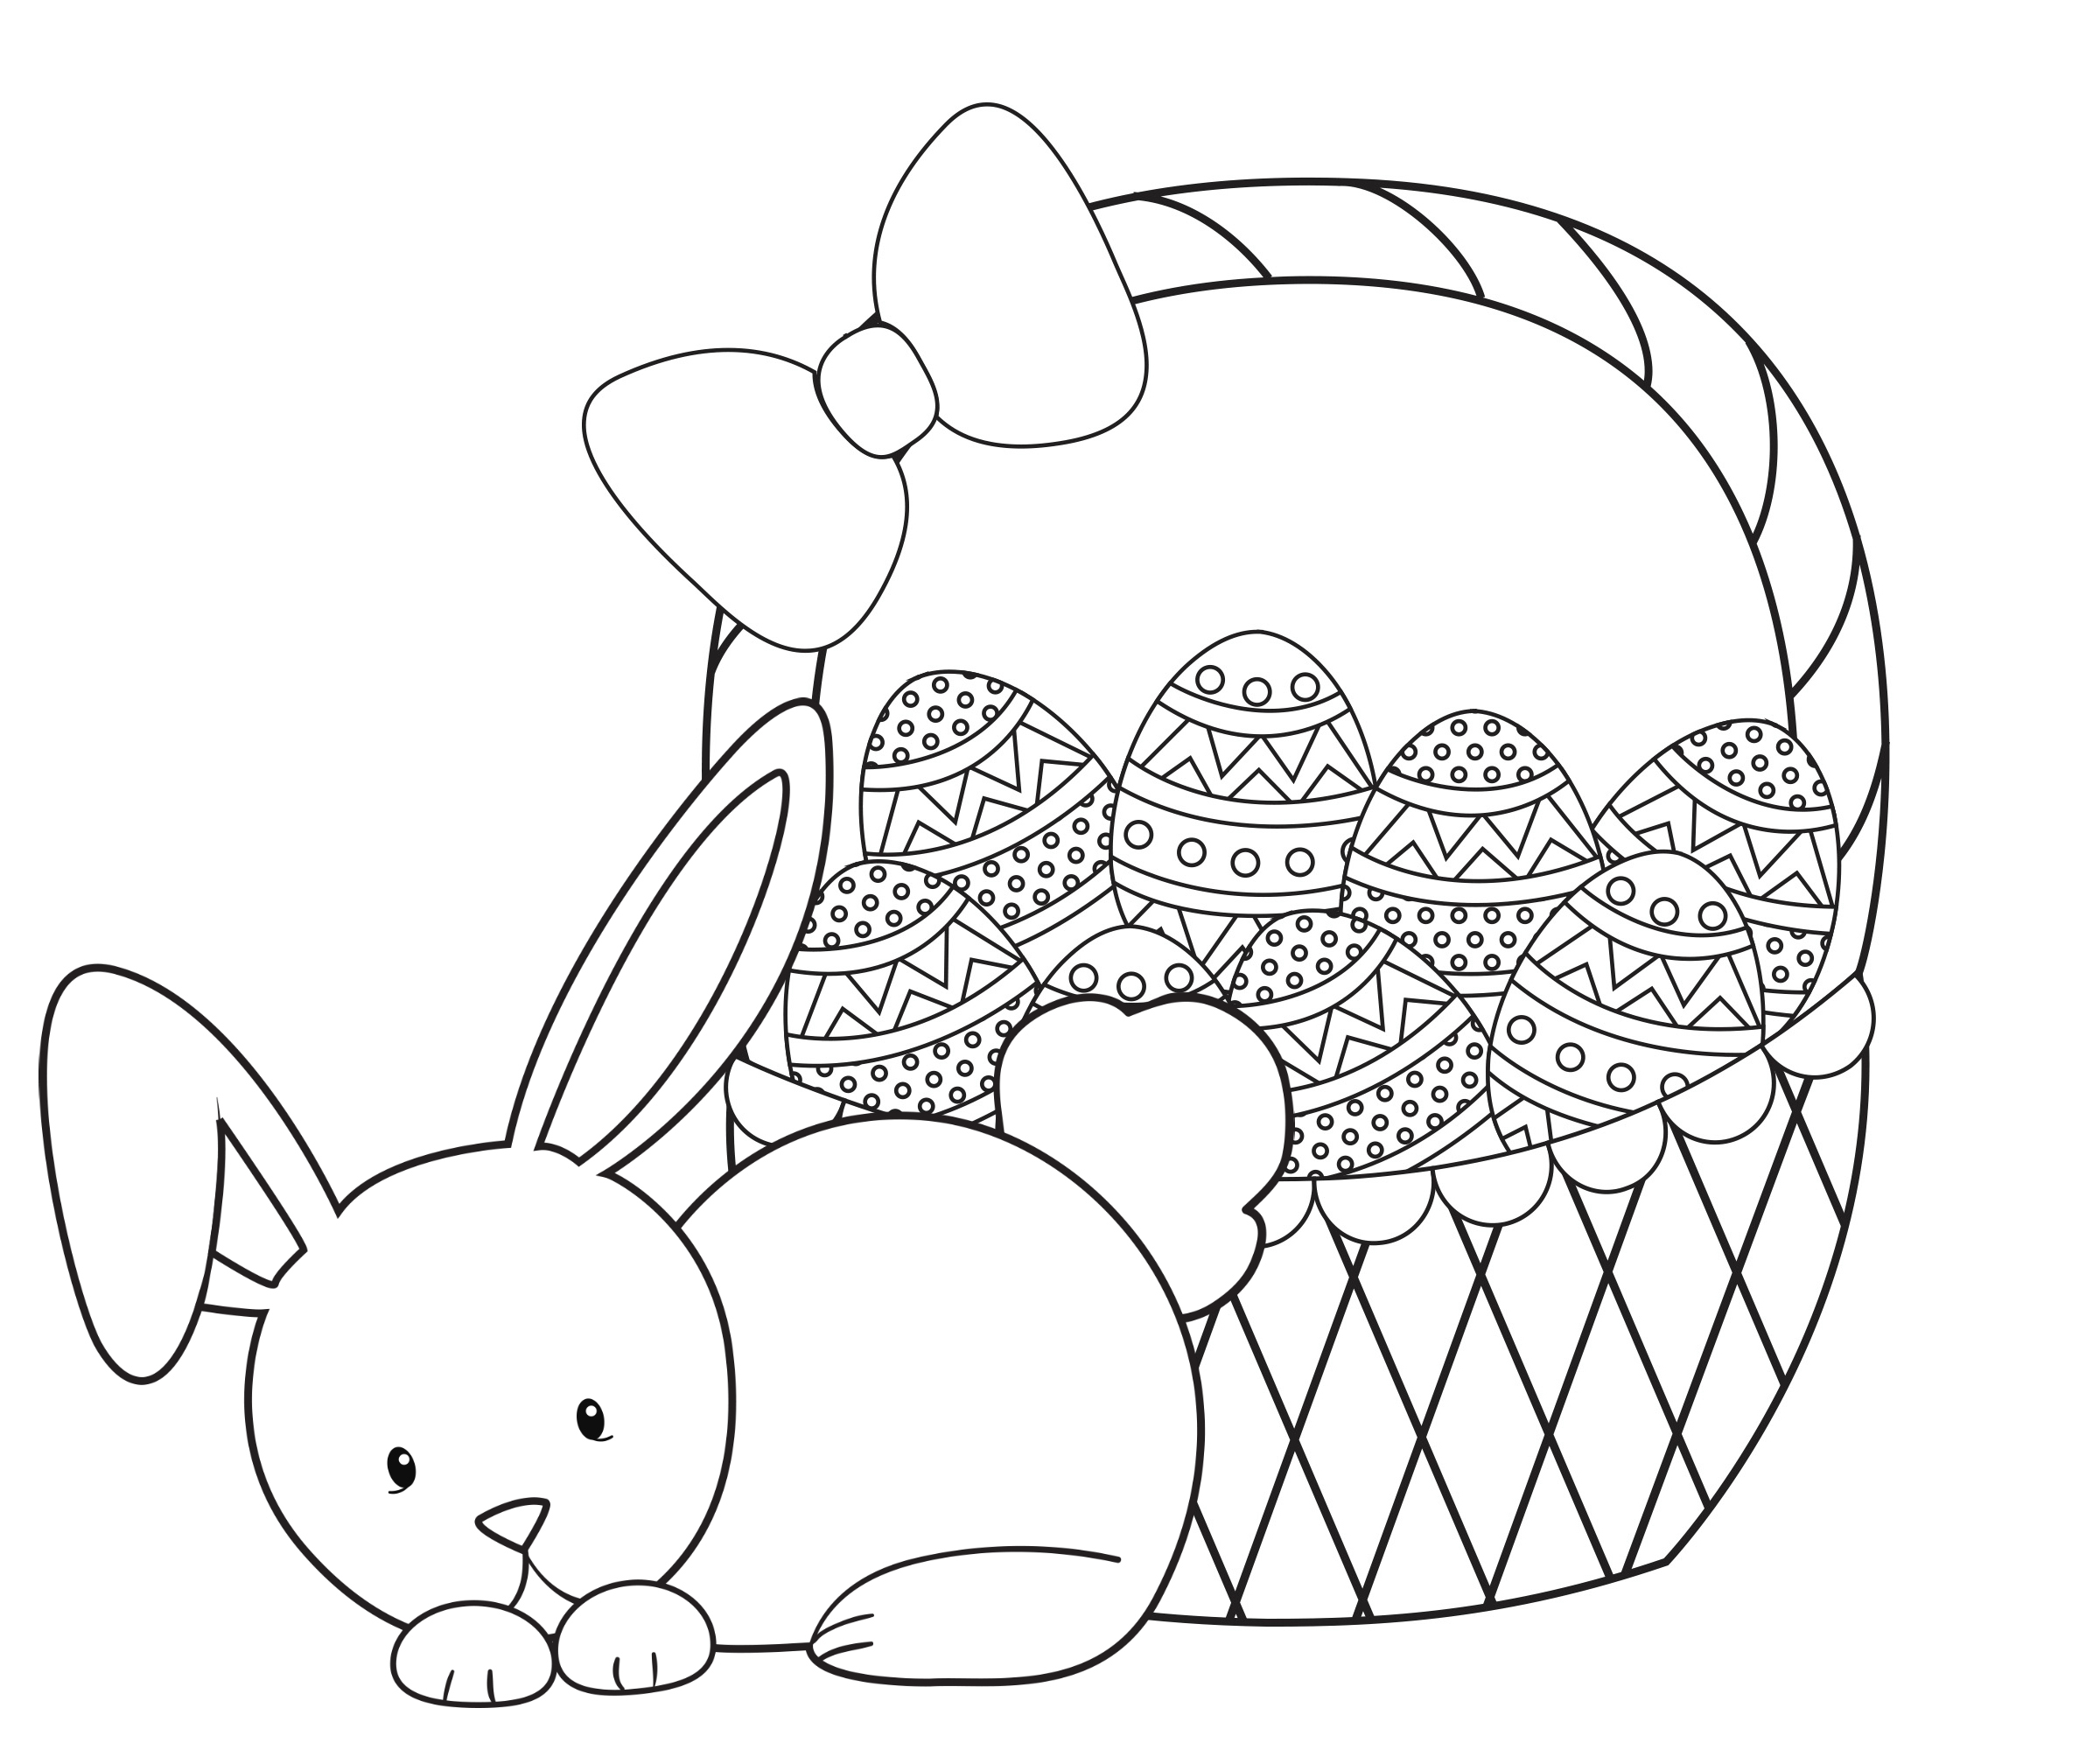 coloring pages for kids easter Easter Coloring Pages for Kids   Crazy Little Projects coloring pages for kids easter